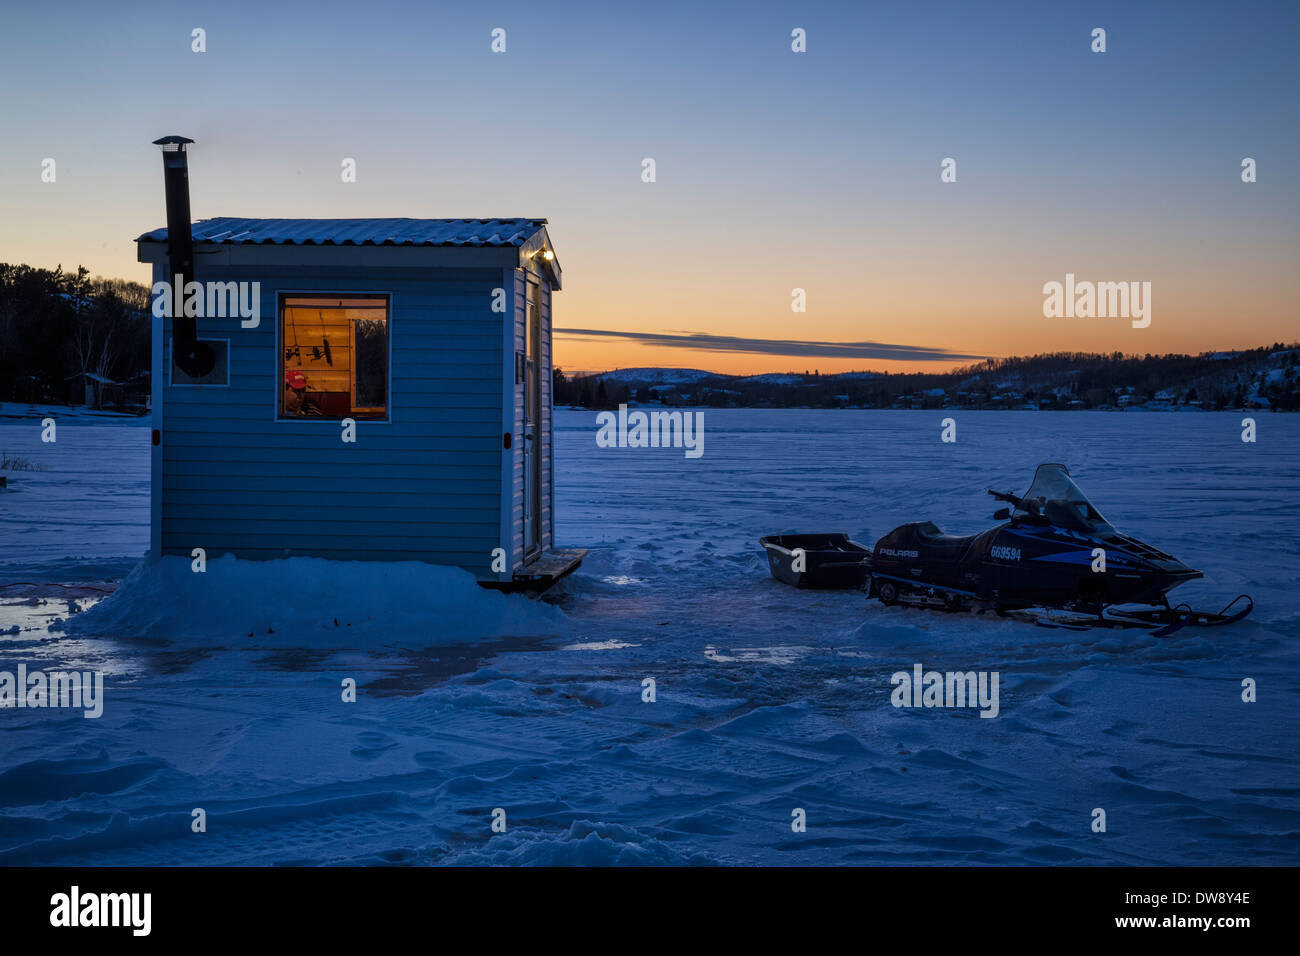 An ice-fishing hut on Long Lake, Sudbury, Ontario, Canada. - Stock Image